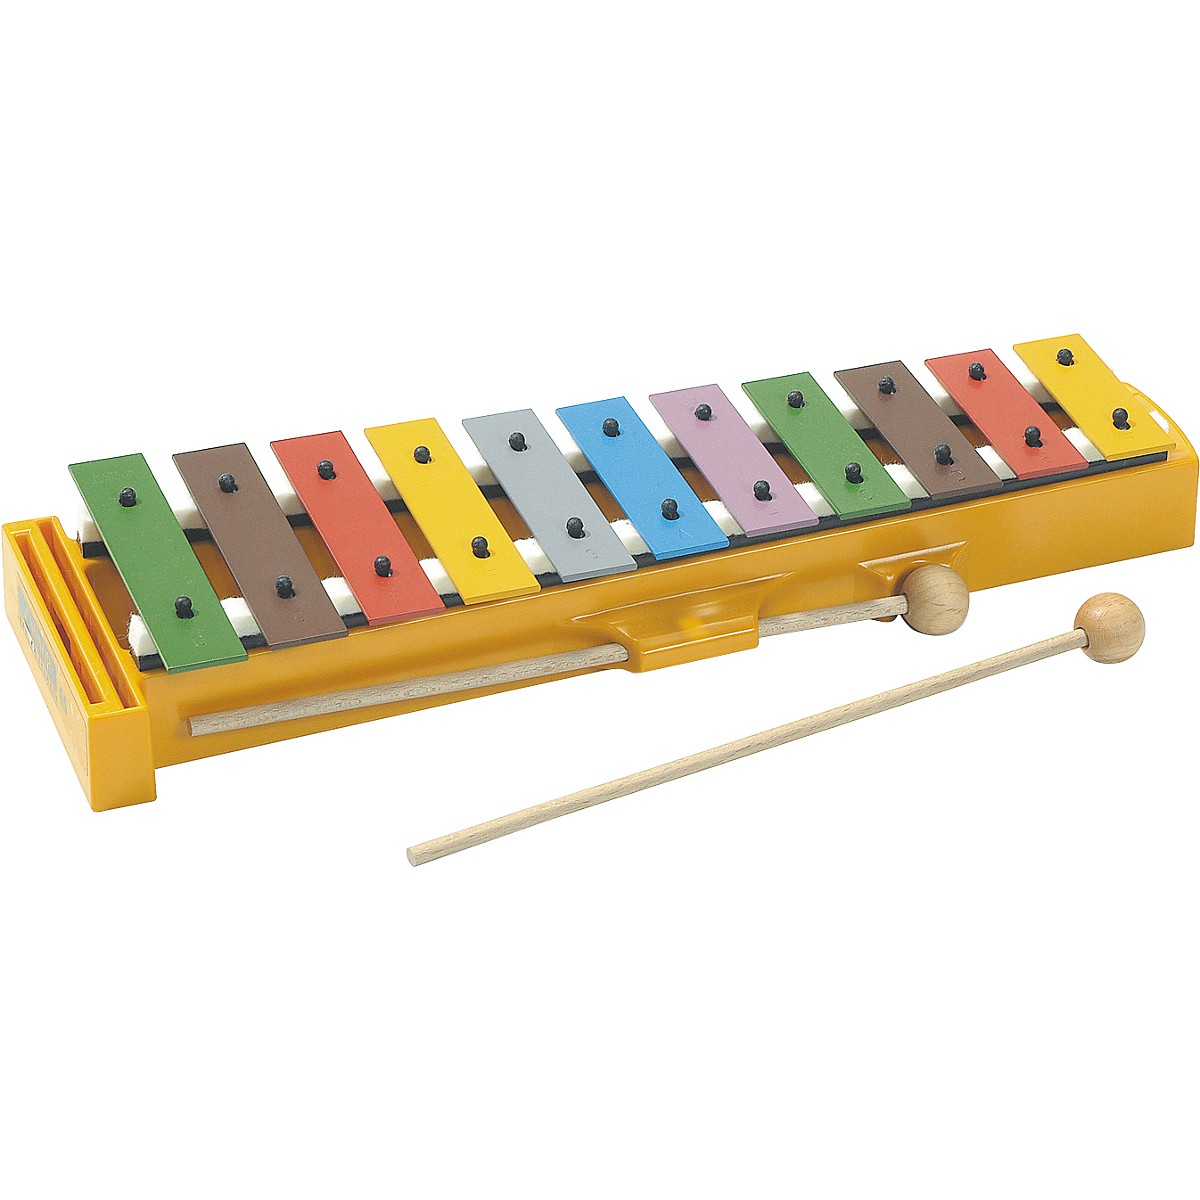 Sonor Orff Children's Glockenspiel